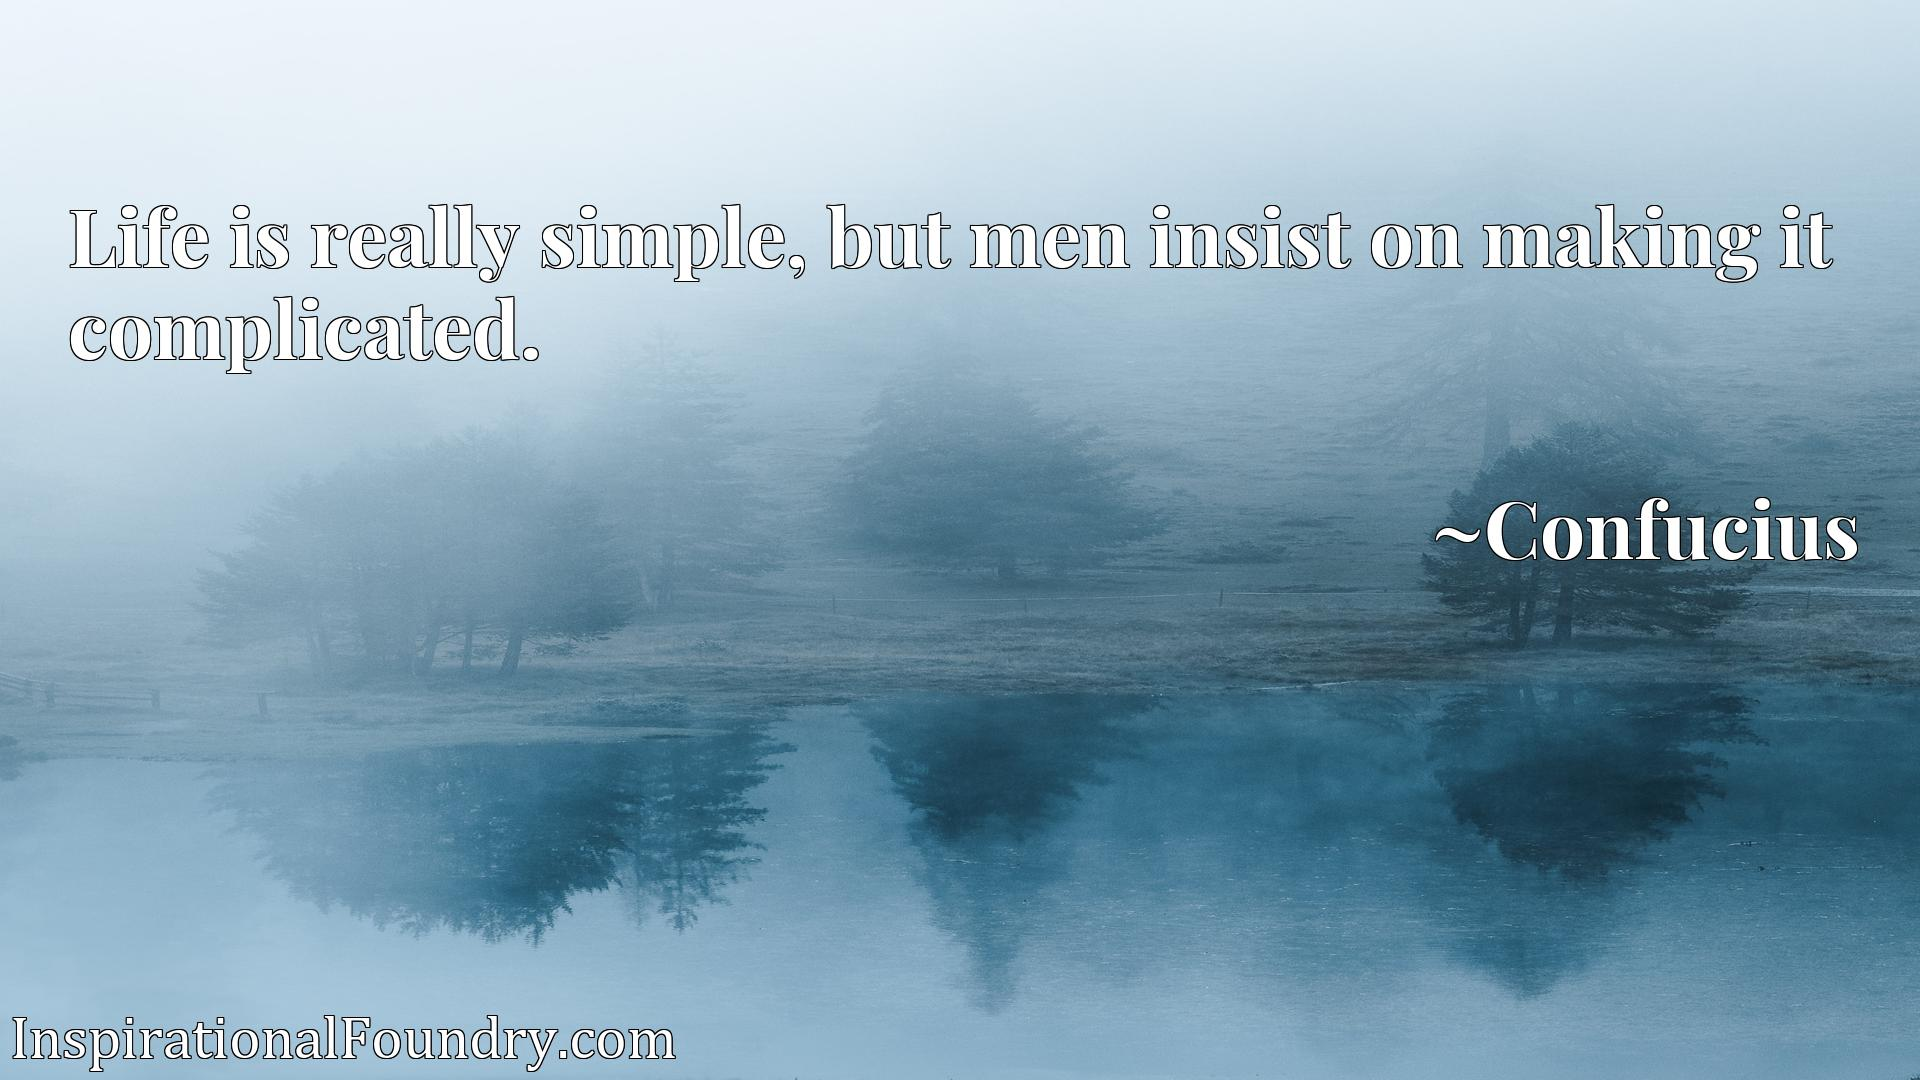 Life is really simple, but men insist on making it complicated.